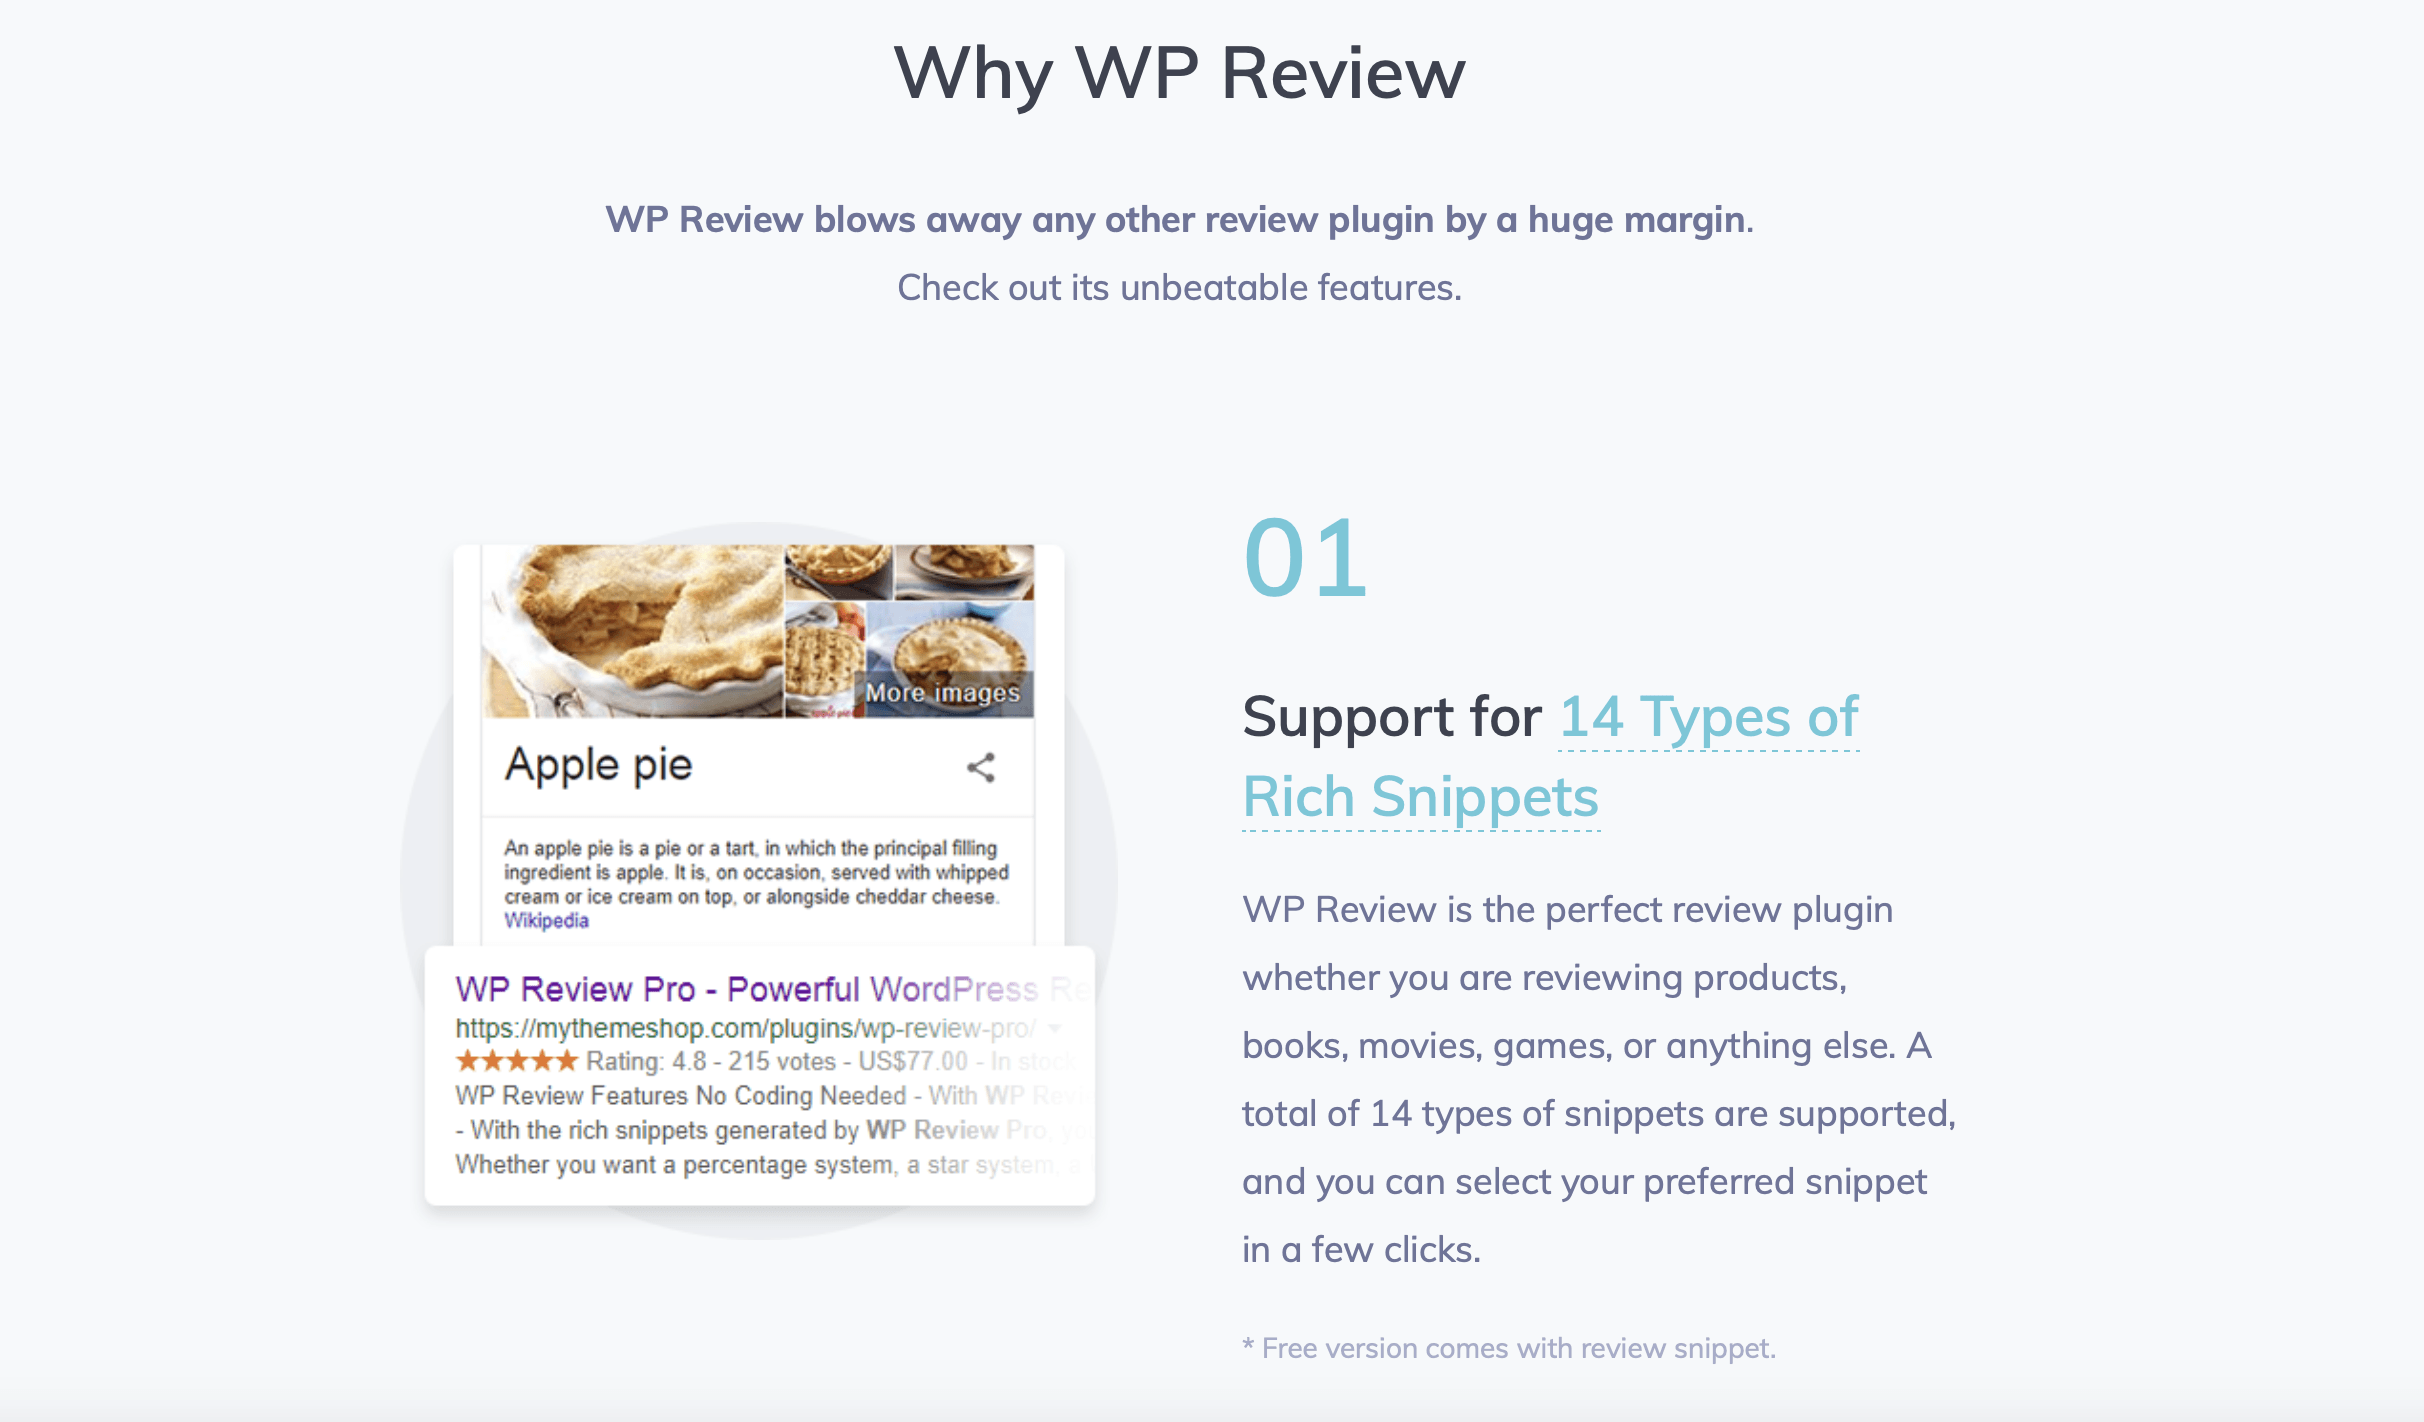 wp-review-pro-